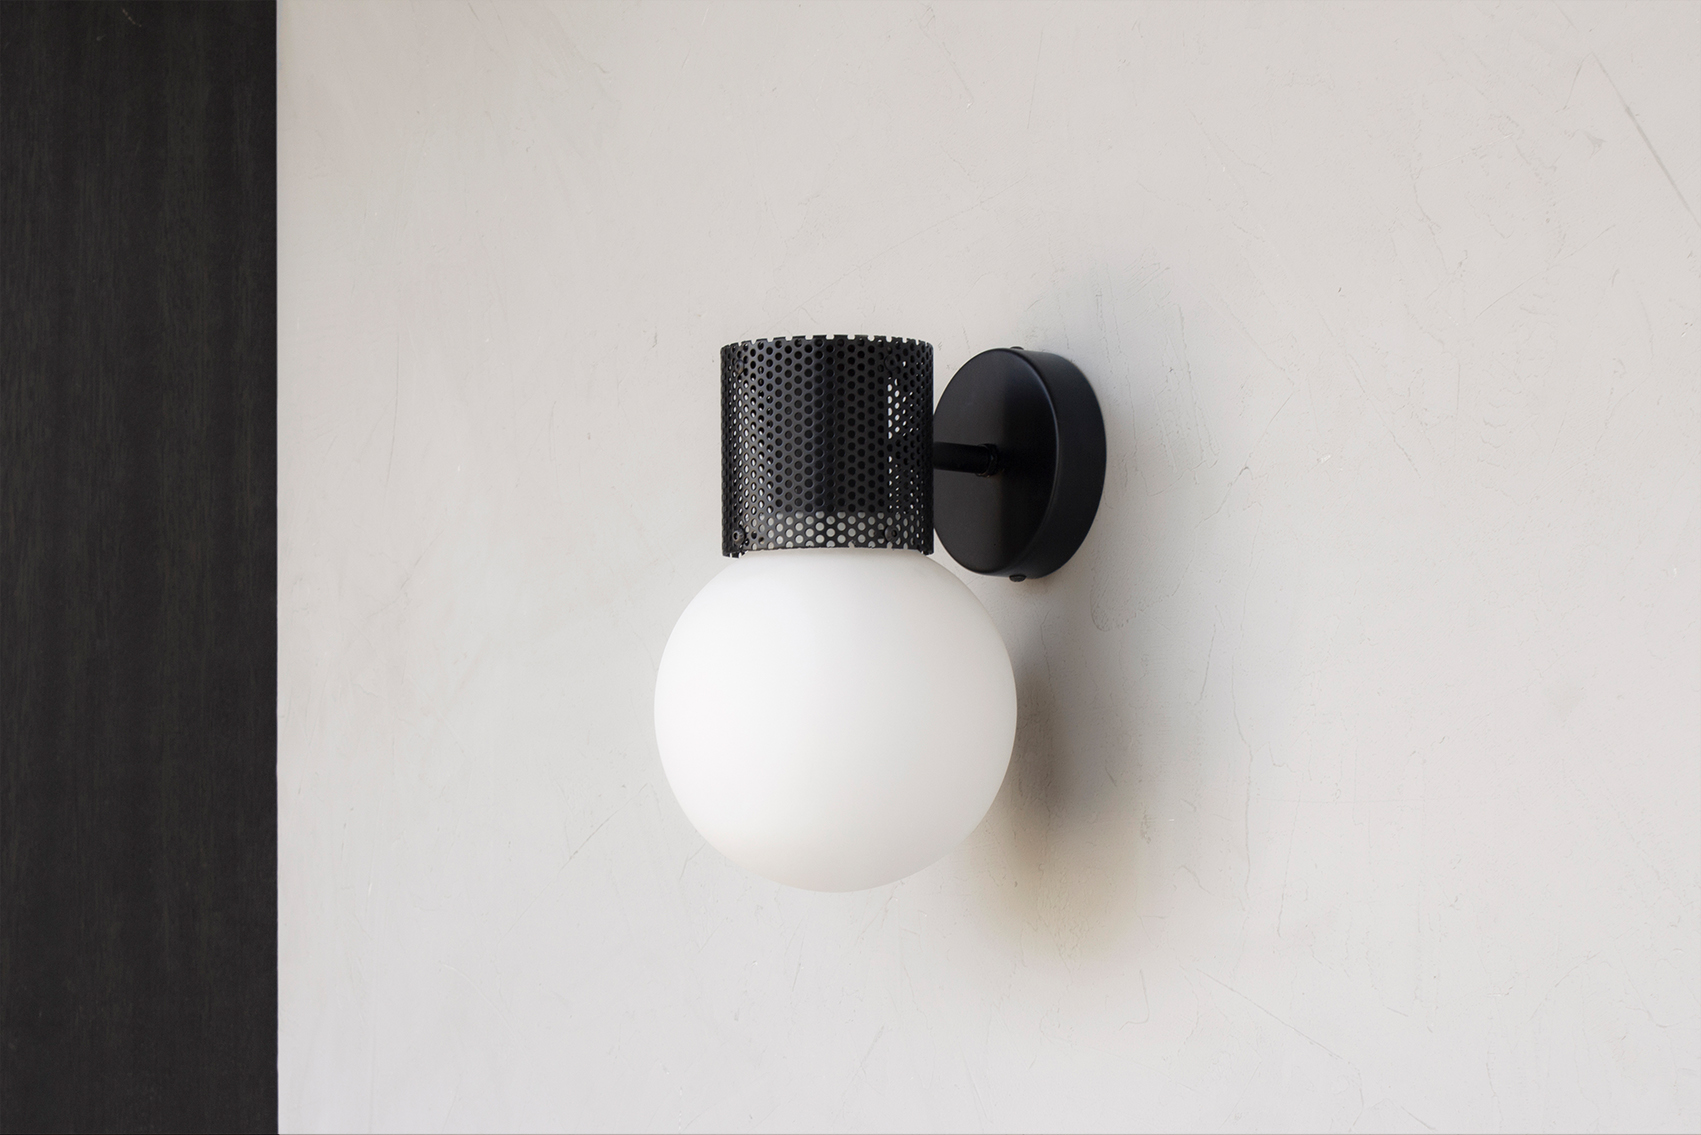 Perf wall sconce in all black